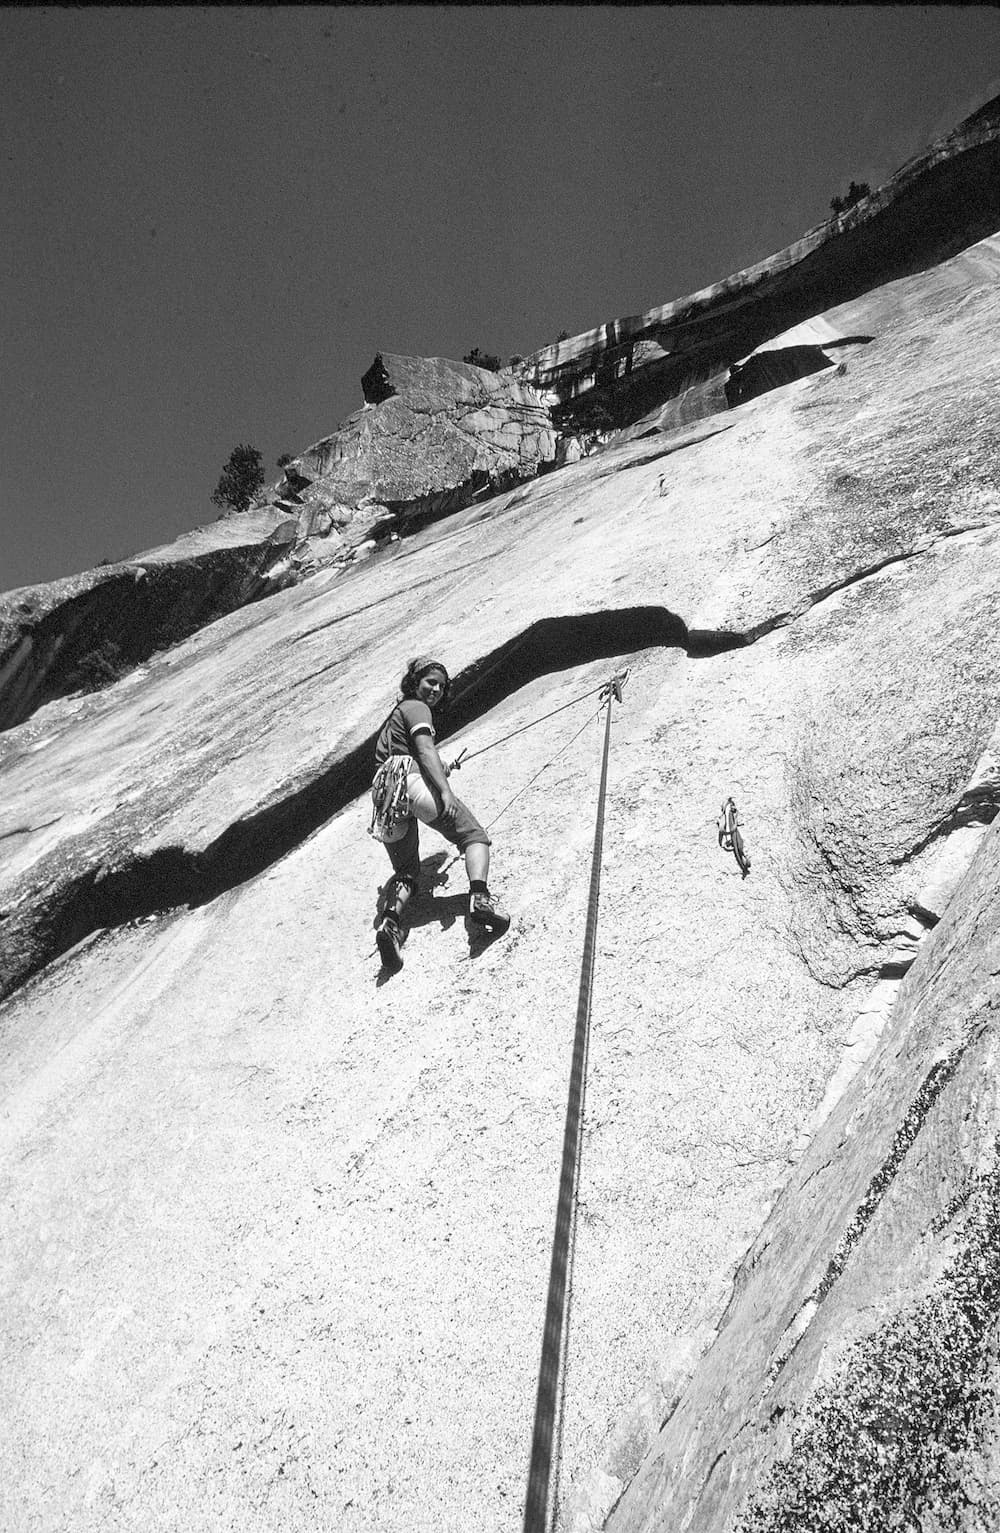 a woman climbing with a rope up a sheer rock face looking down at the camera